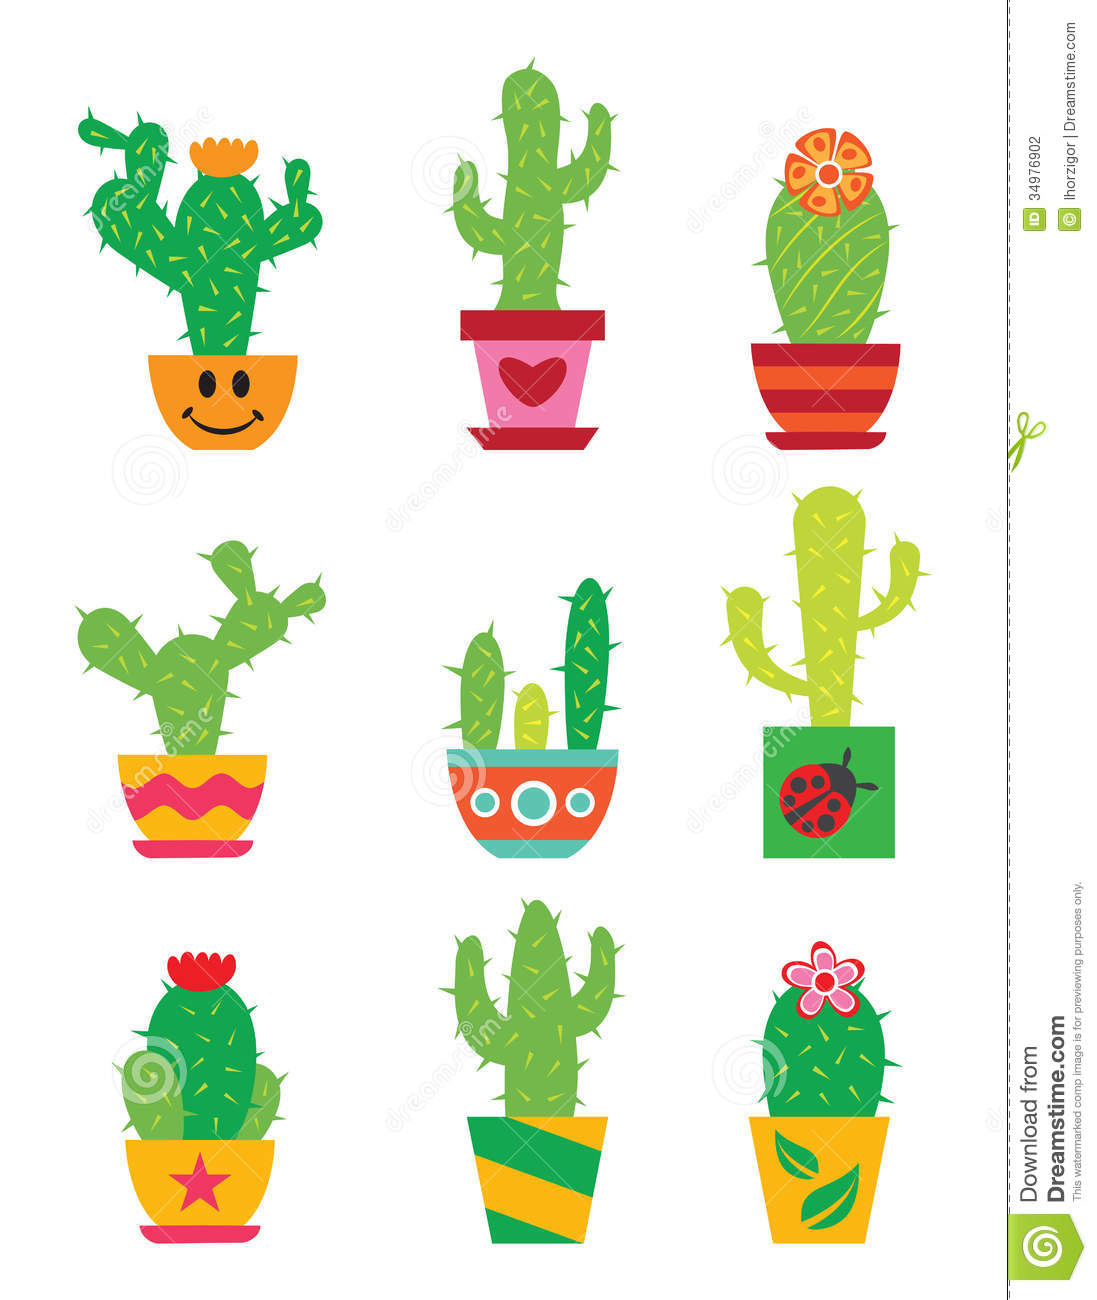 Royalty Free Stock Photos Demography Chart Image10488398 furthermore Like Images together with Stock Photography Cactus Set White Background Image34976902 in addition Stock Illustration Corn Symbol Icon Vector Image86480578 further Water 20Droplets 20clipart 20drawing. on thumbs up clip art